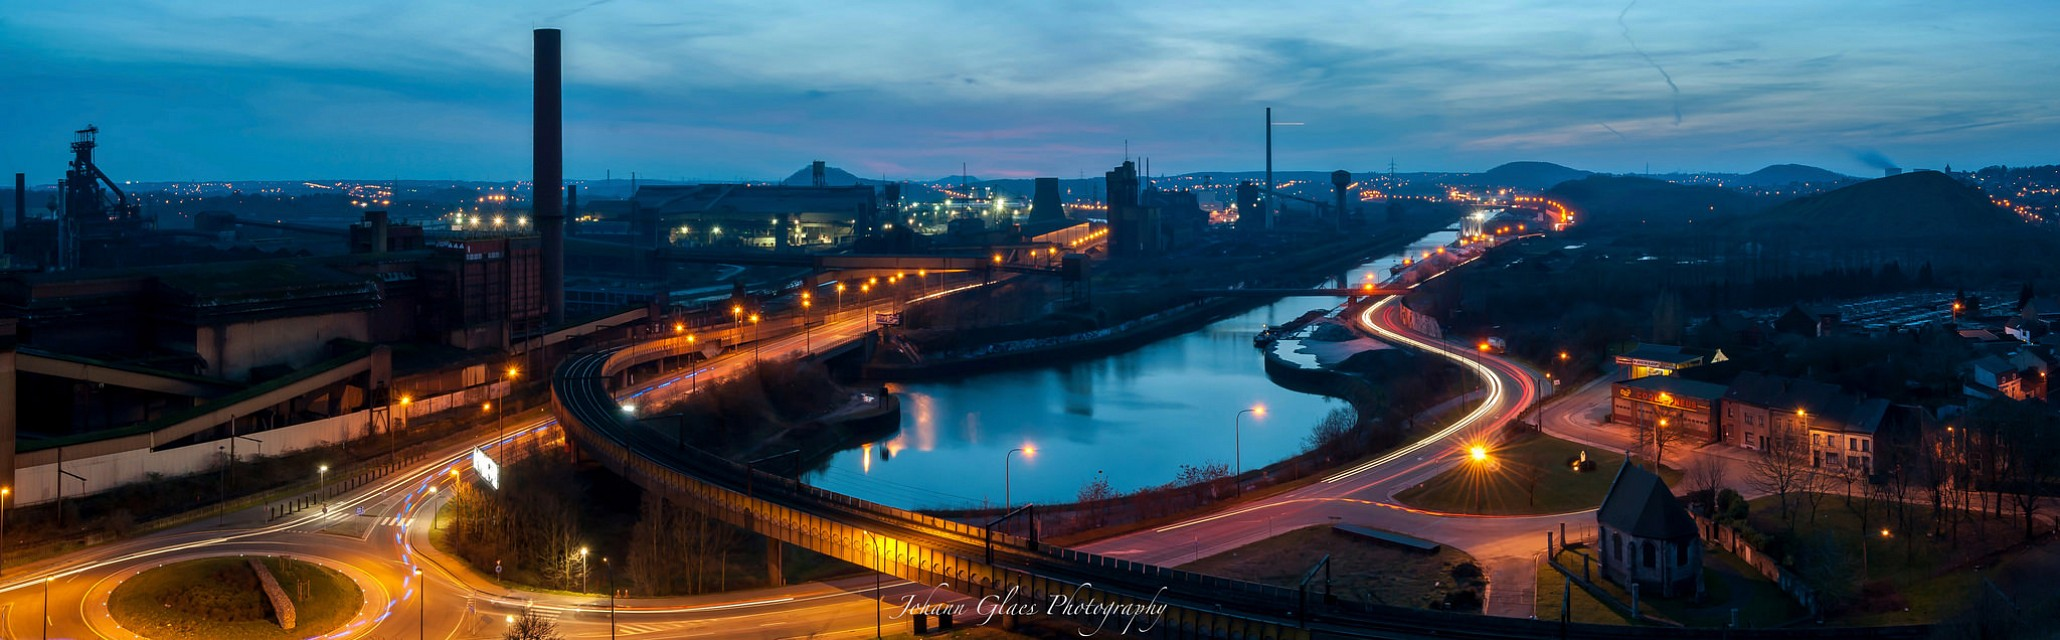 Blue Hour on the Black Country - Charleroi